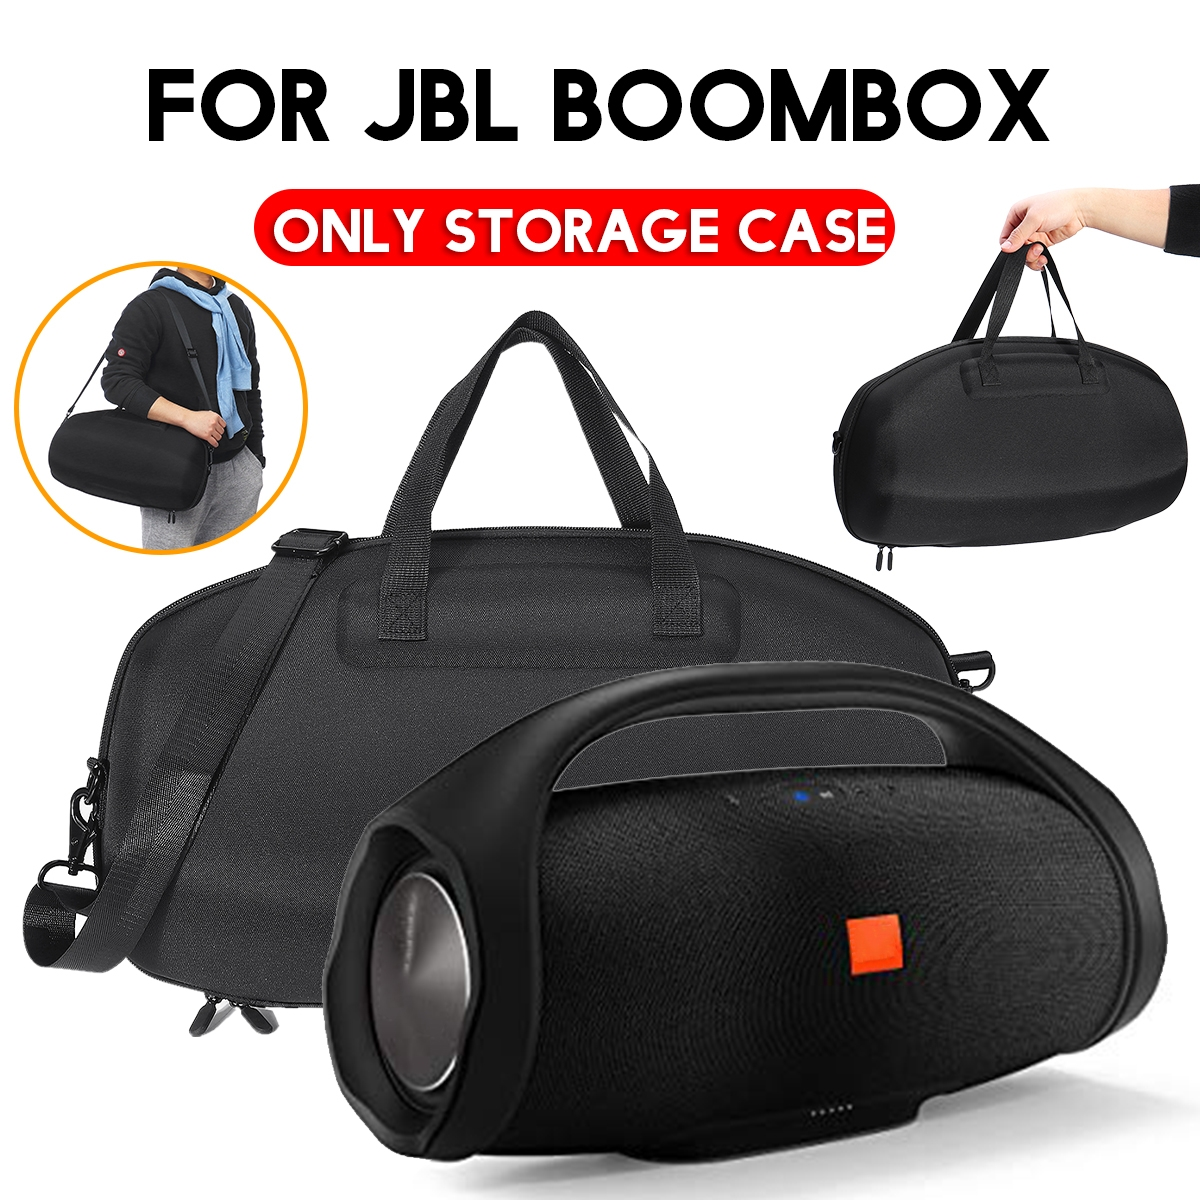 Portable EVA 1680D Oxford Cloth Storage Bag for JBL BOOMBOX Wireless Bluetooth Speaker